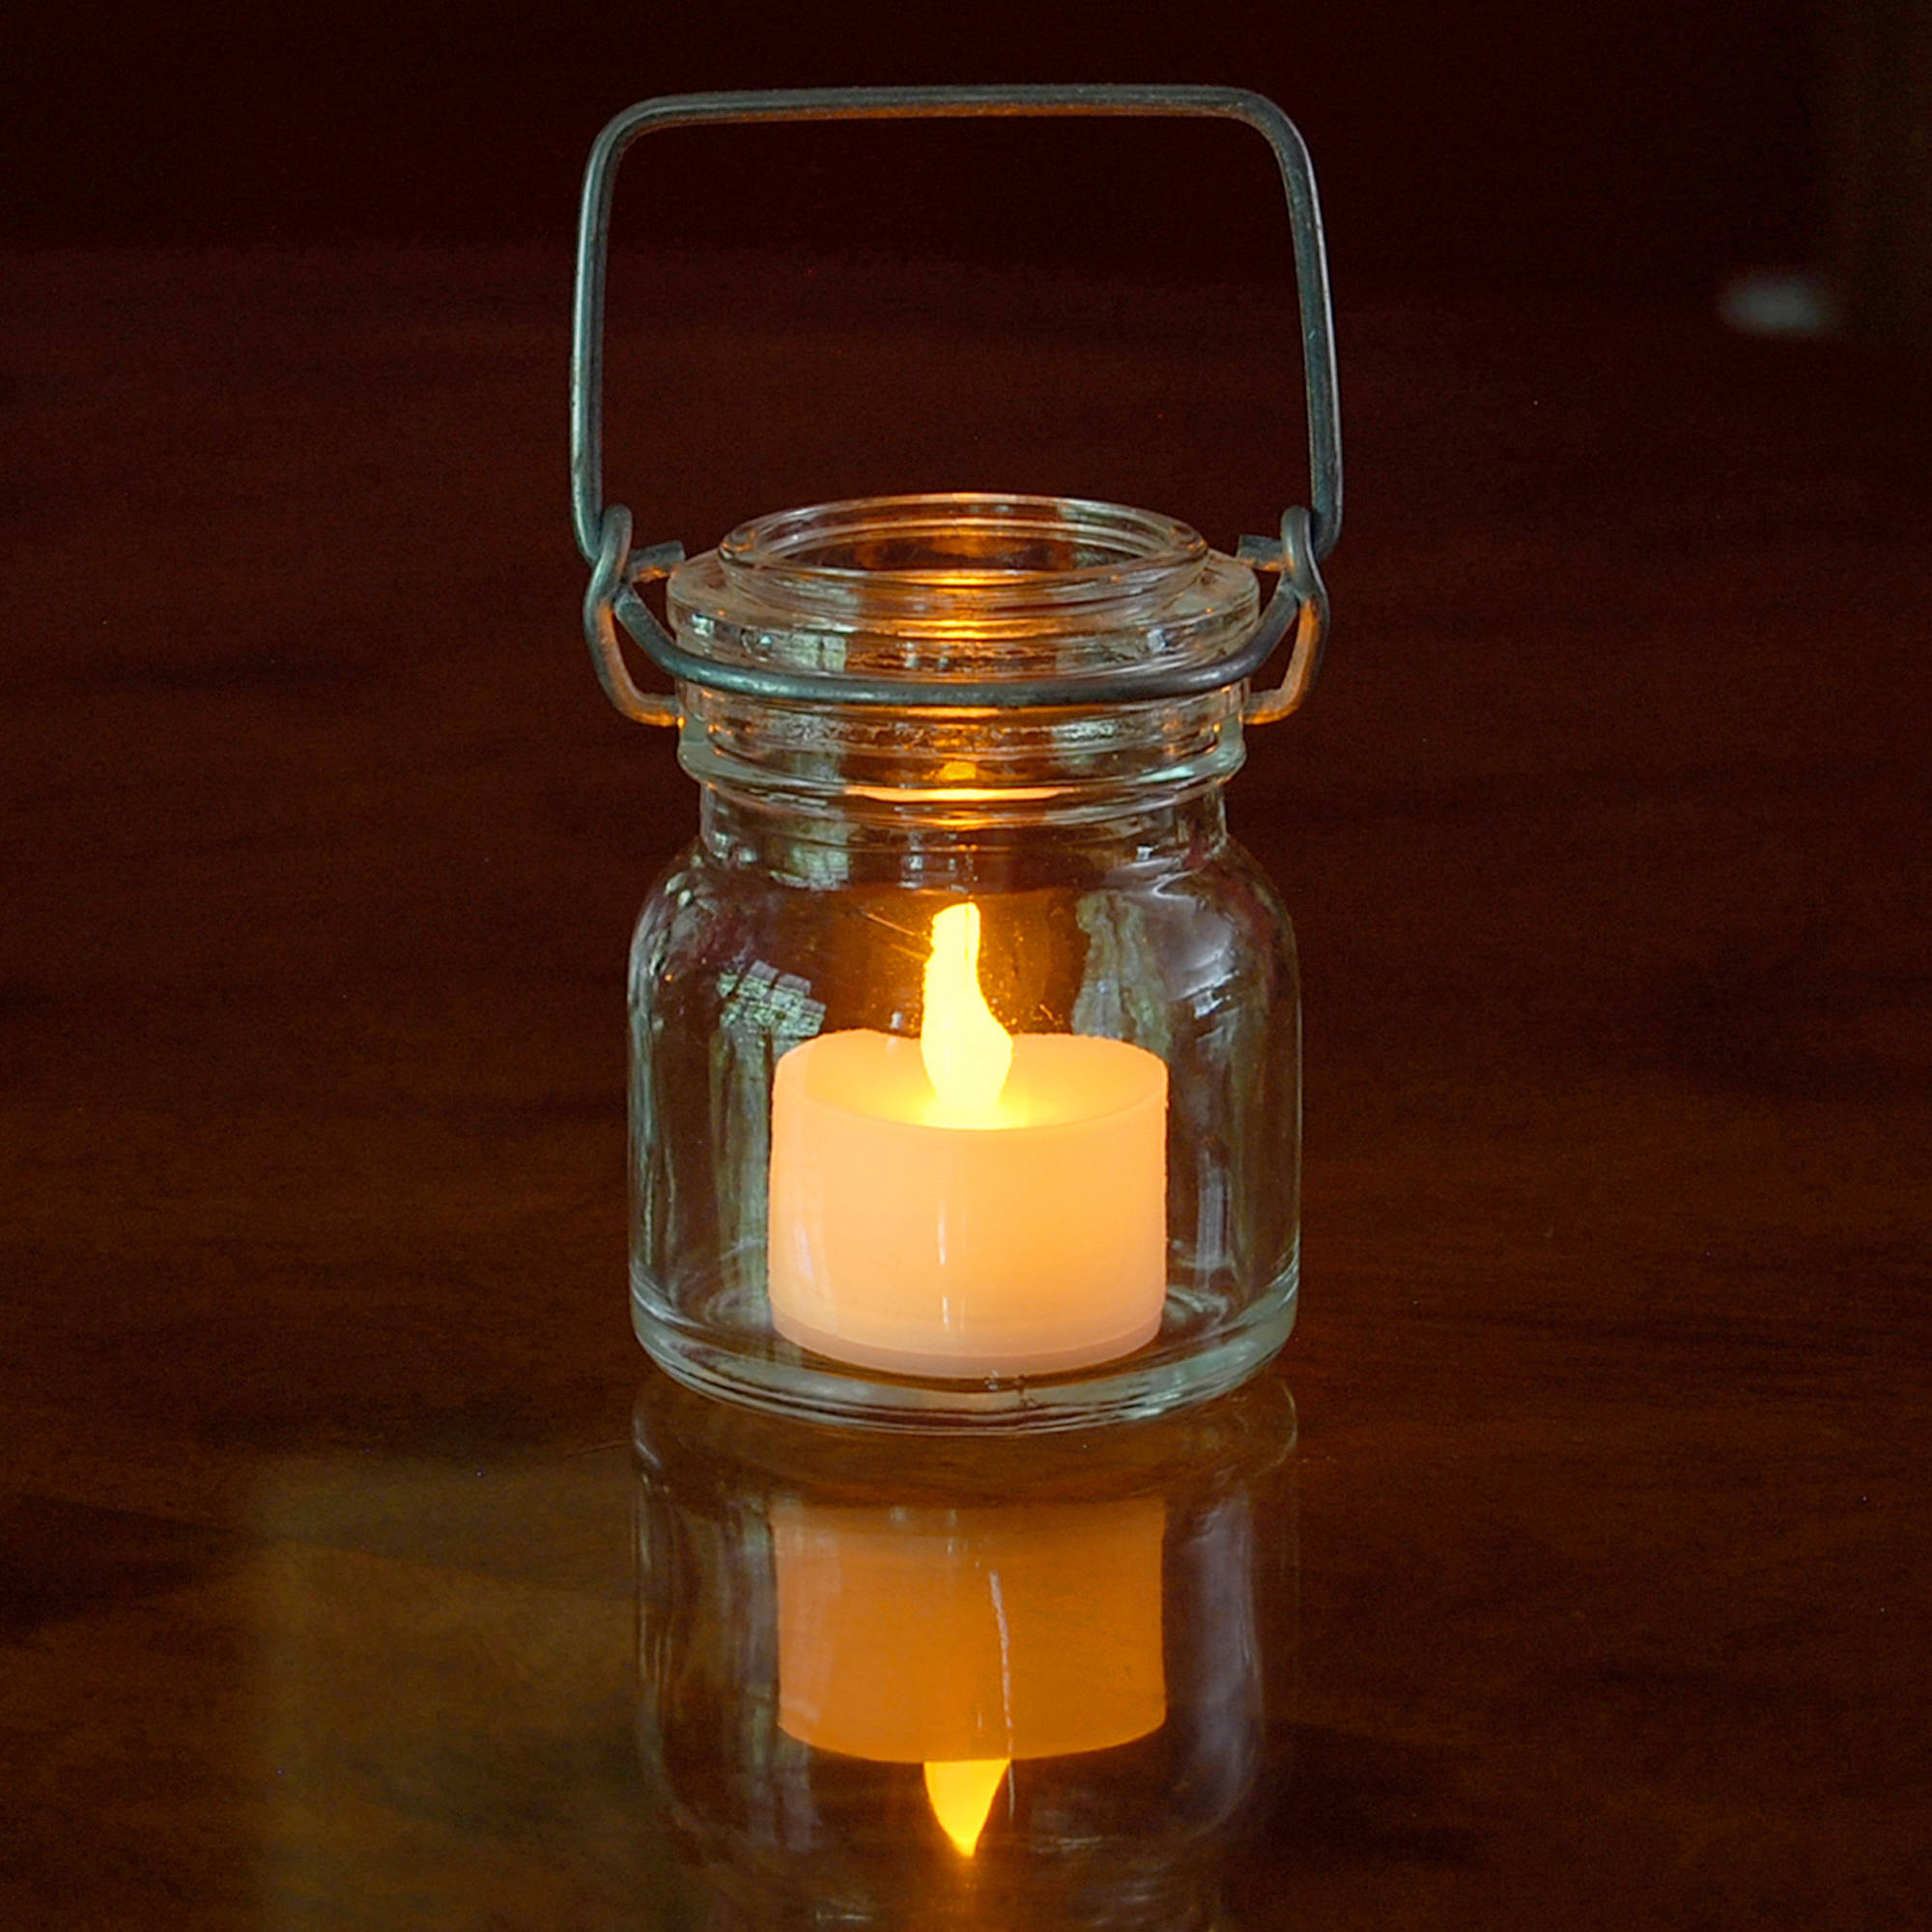 lumabase battery operated led tea light candles 12 count